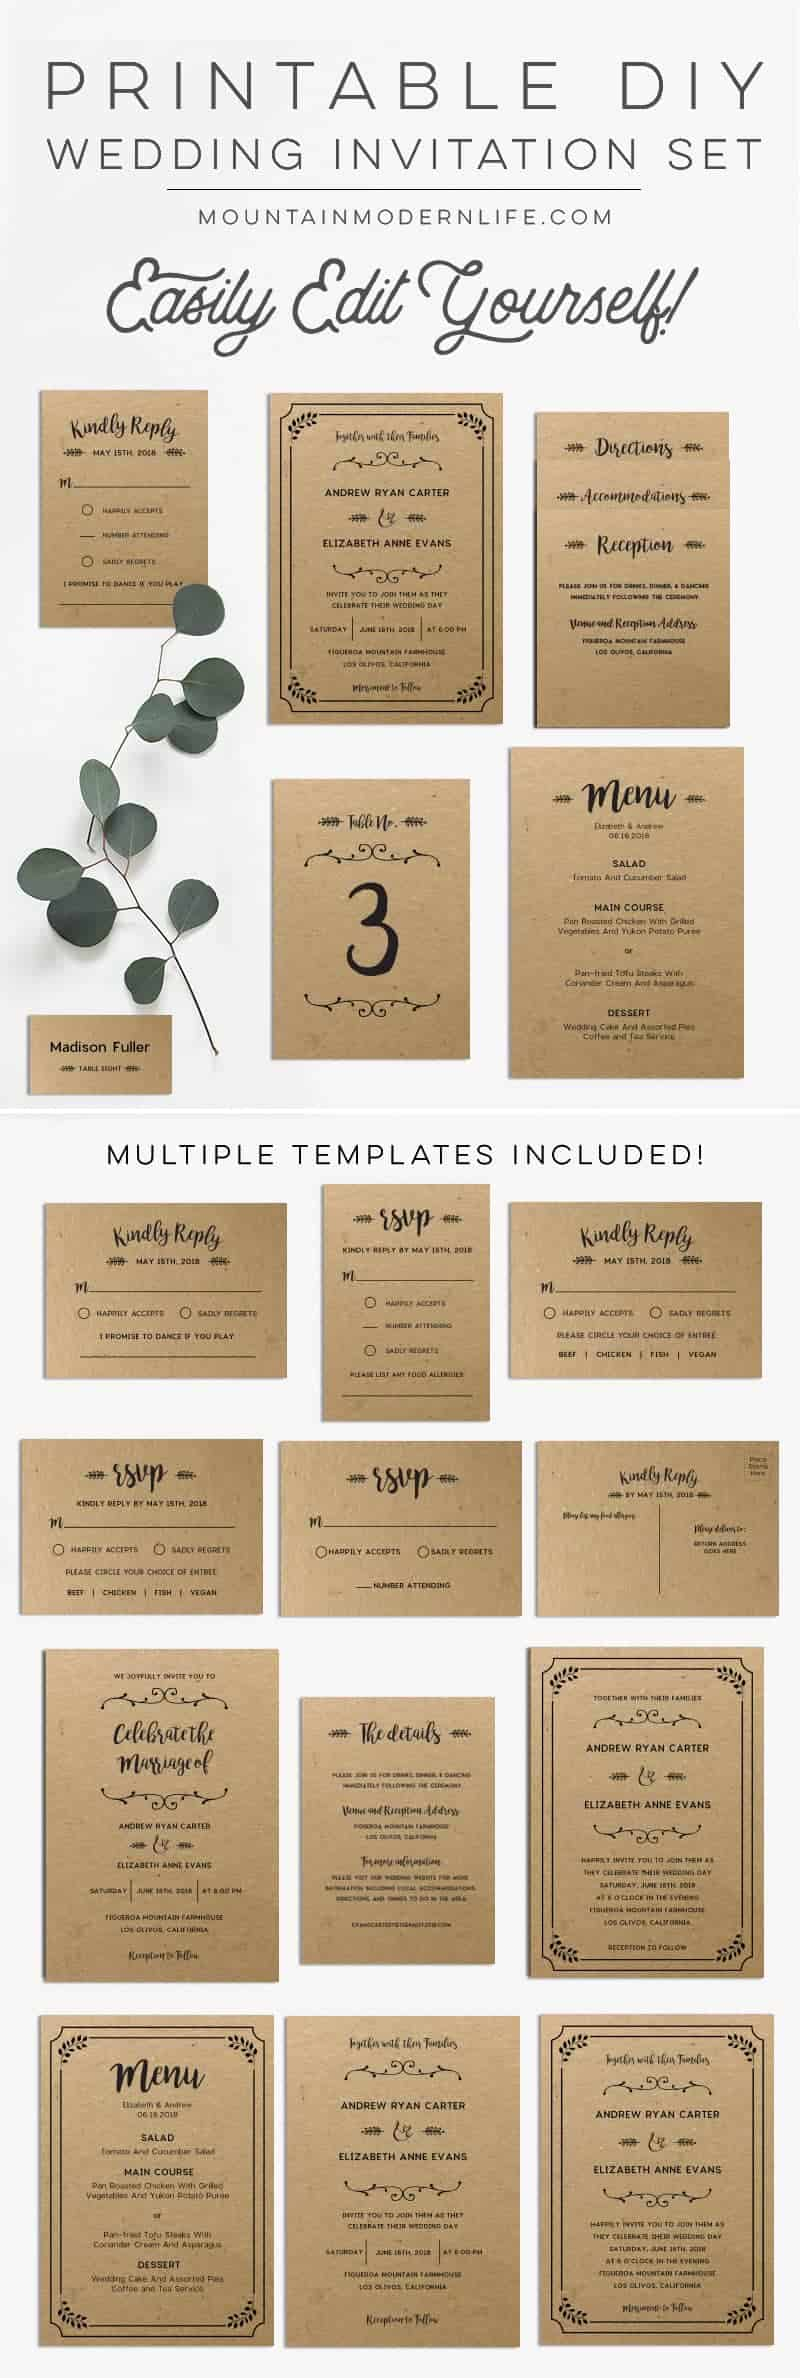 Planning a rustic-inspired wedding? Save money by customizing this printable DIY wedding invitation set yourself! MountainModernLife.com